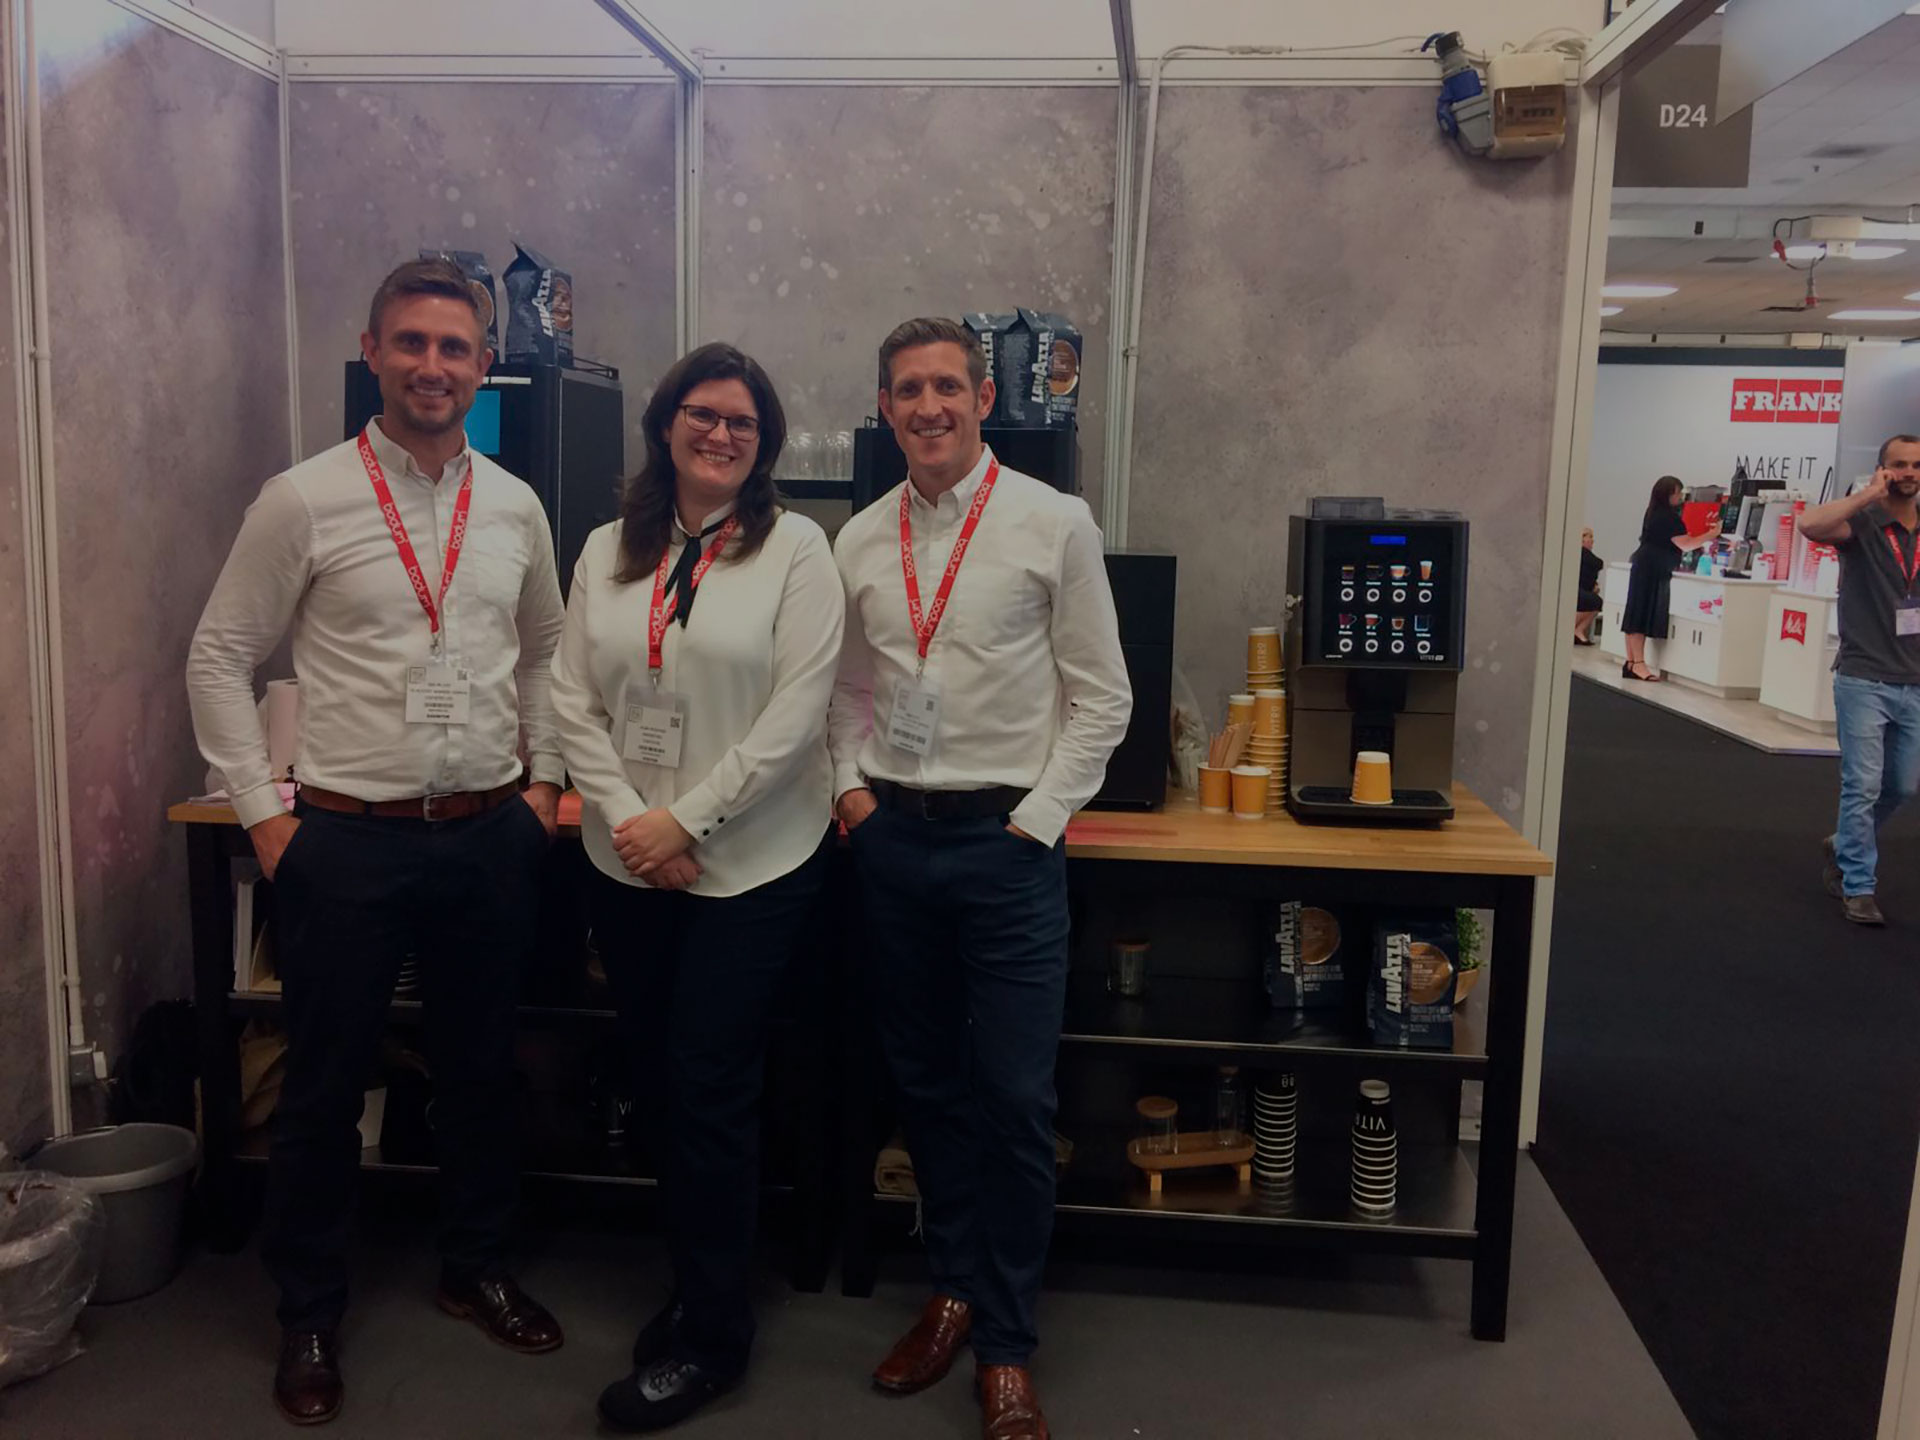 Coffetek showcases its new machines at the European Coffee Expo in London